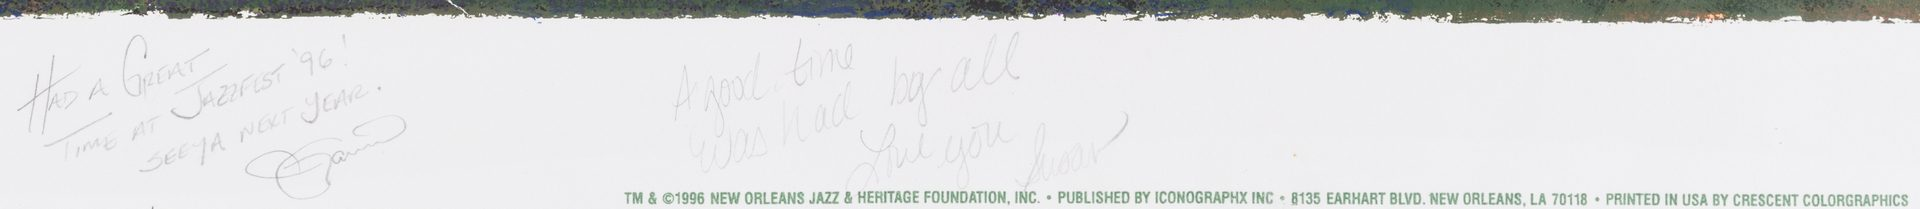 Lot 165: 1996 Pete Fountain N. O. Jazz & Heritage Festival